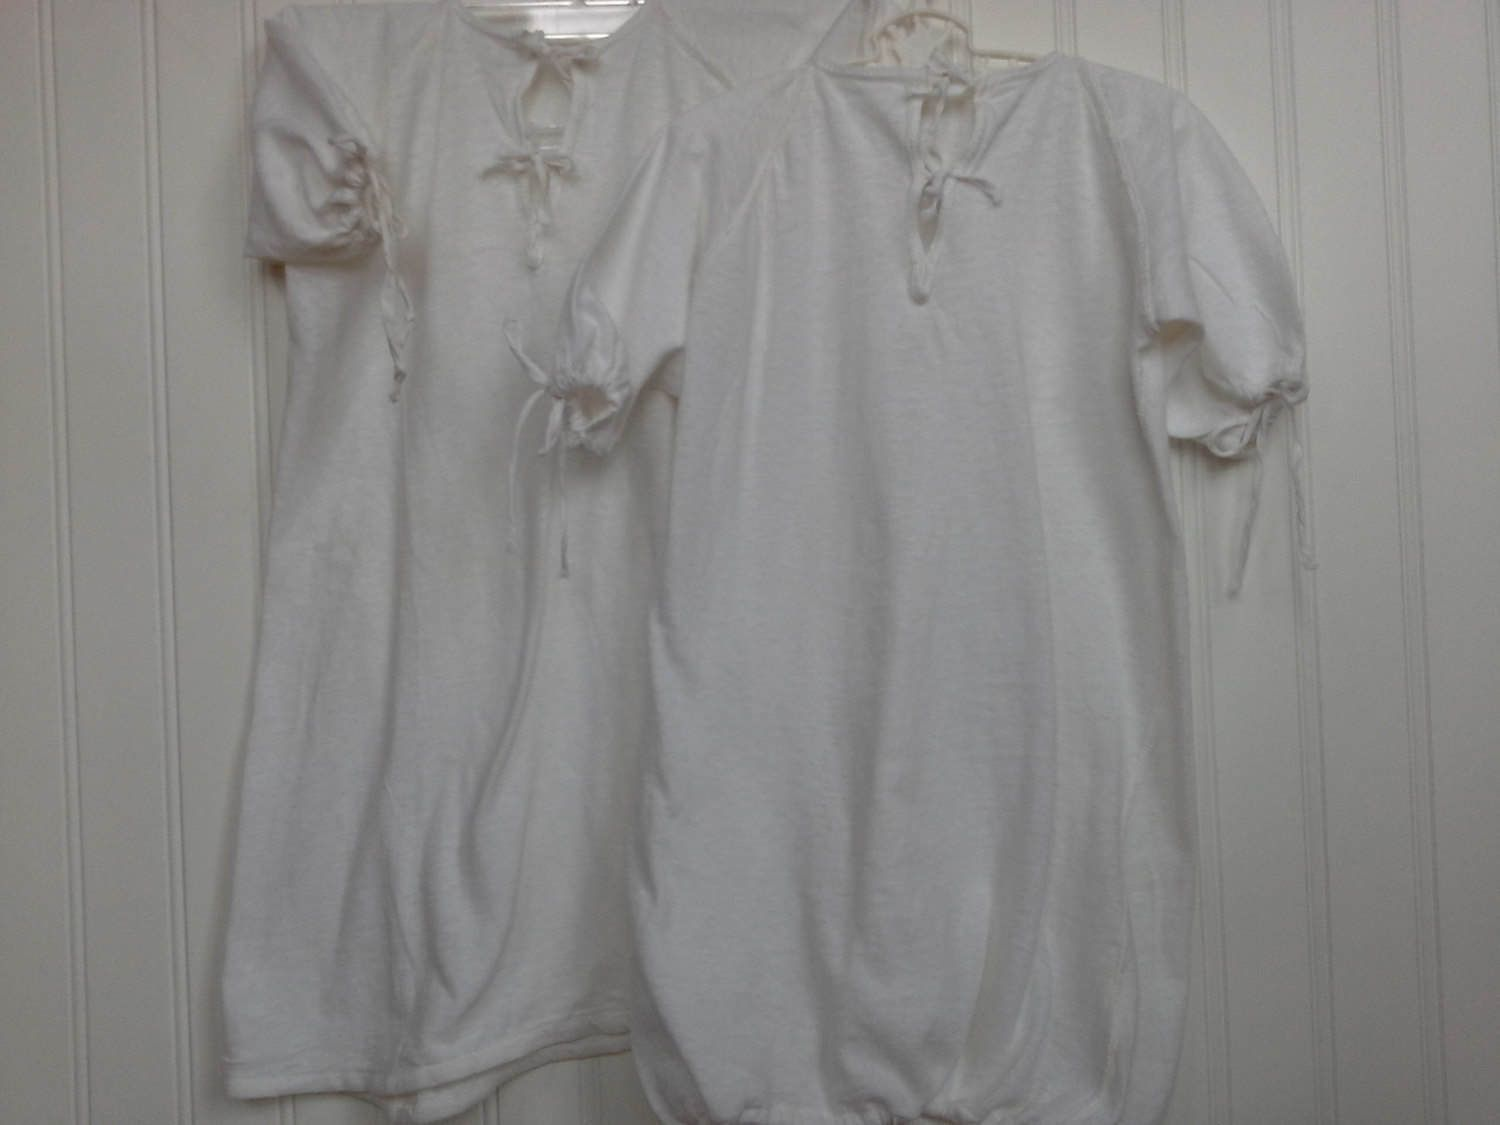 Vintage Baby Gowns, Drawstring Baby Gowns, 1950\'s Baby Gowns, White ...